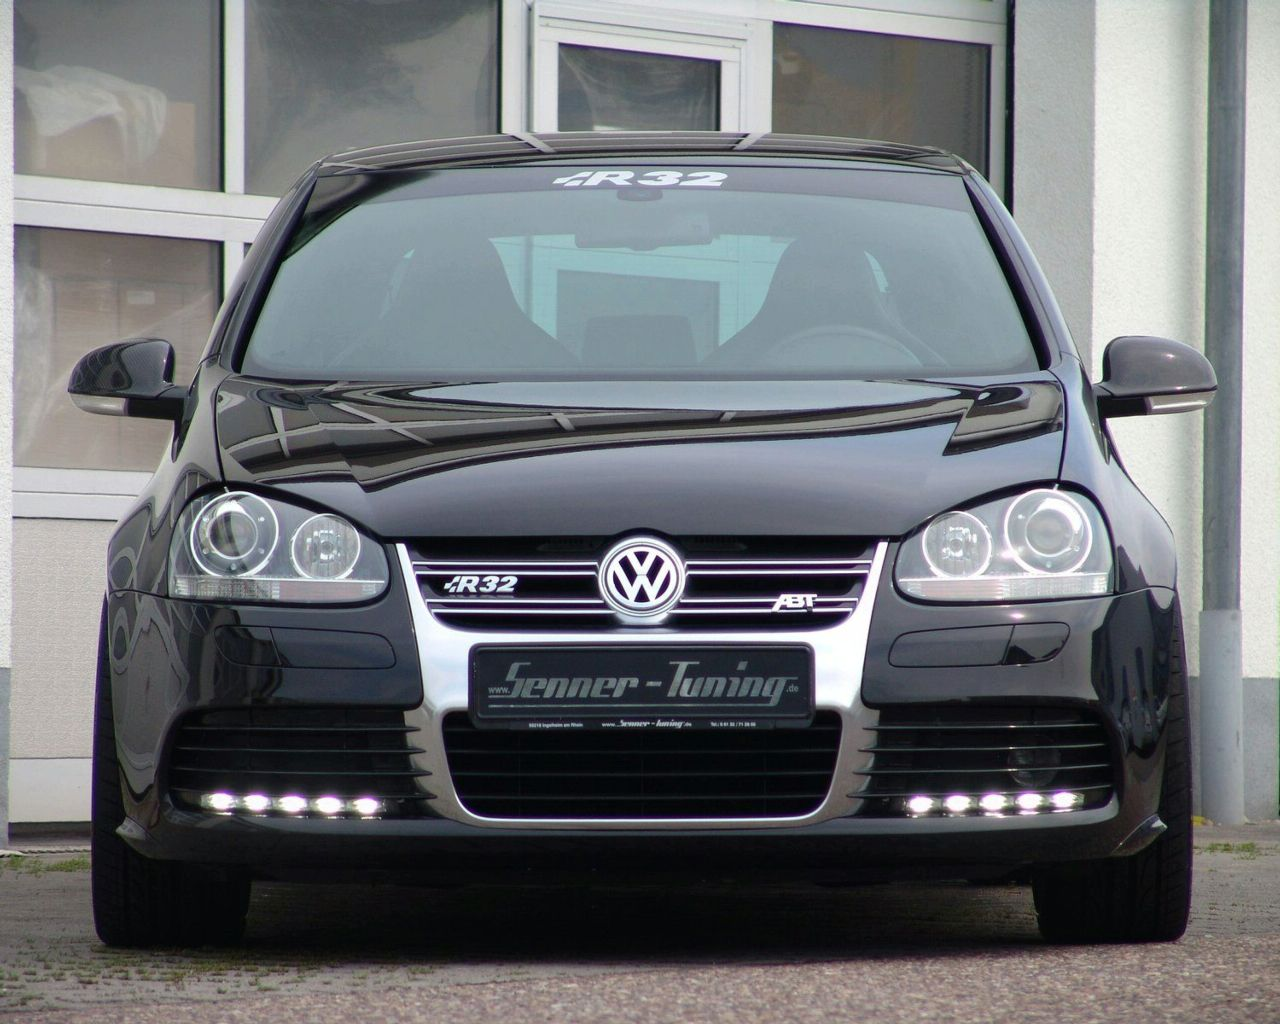 vw golf v r32 by senner tuning car tuning styling. Black Bedroom Furniture Sets. Home Design Ideas